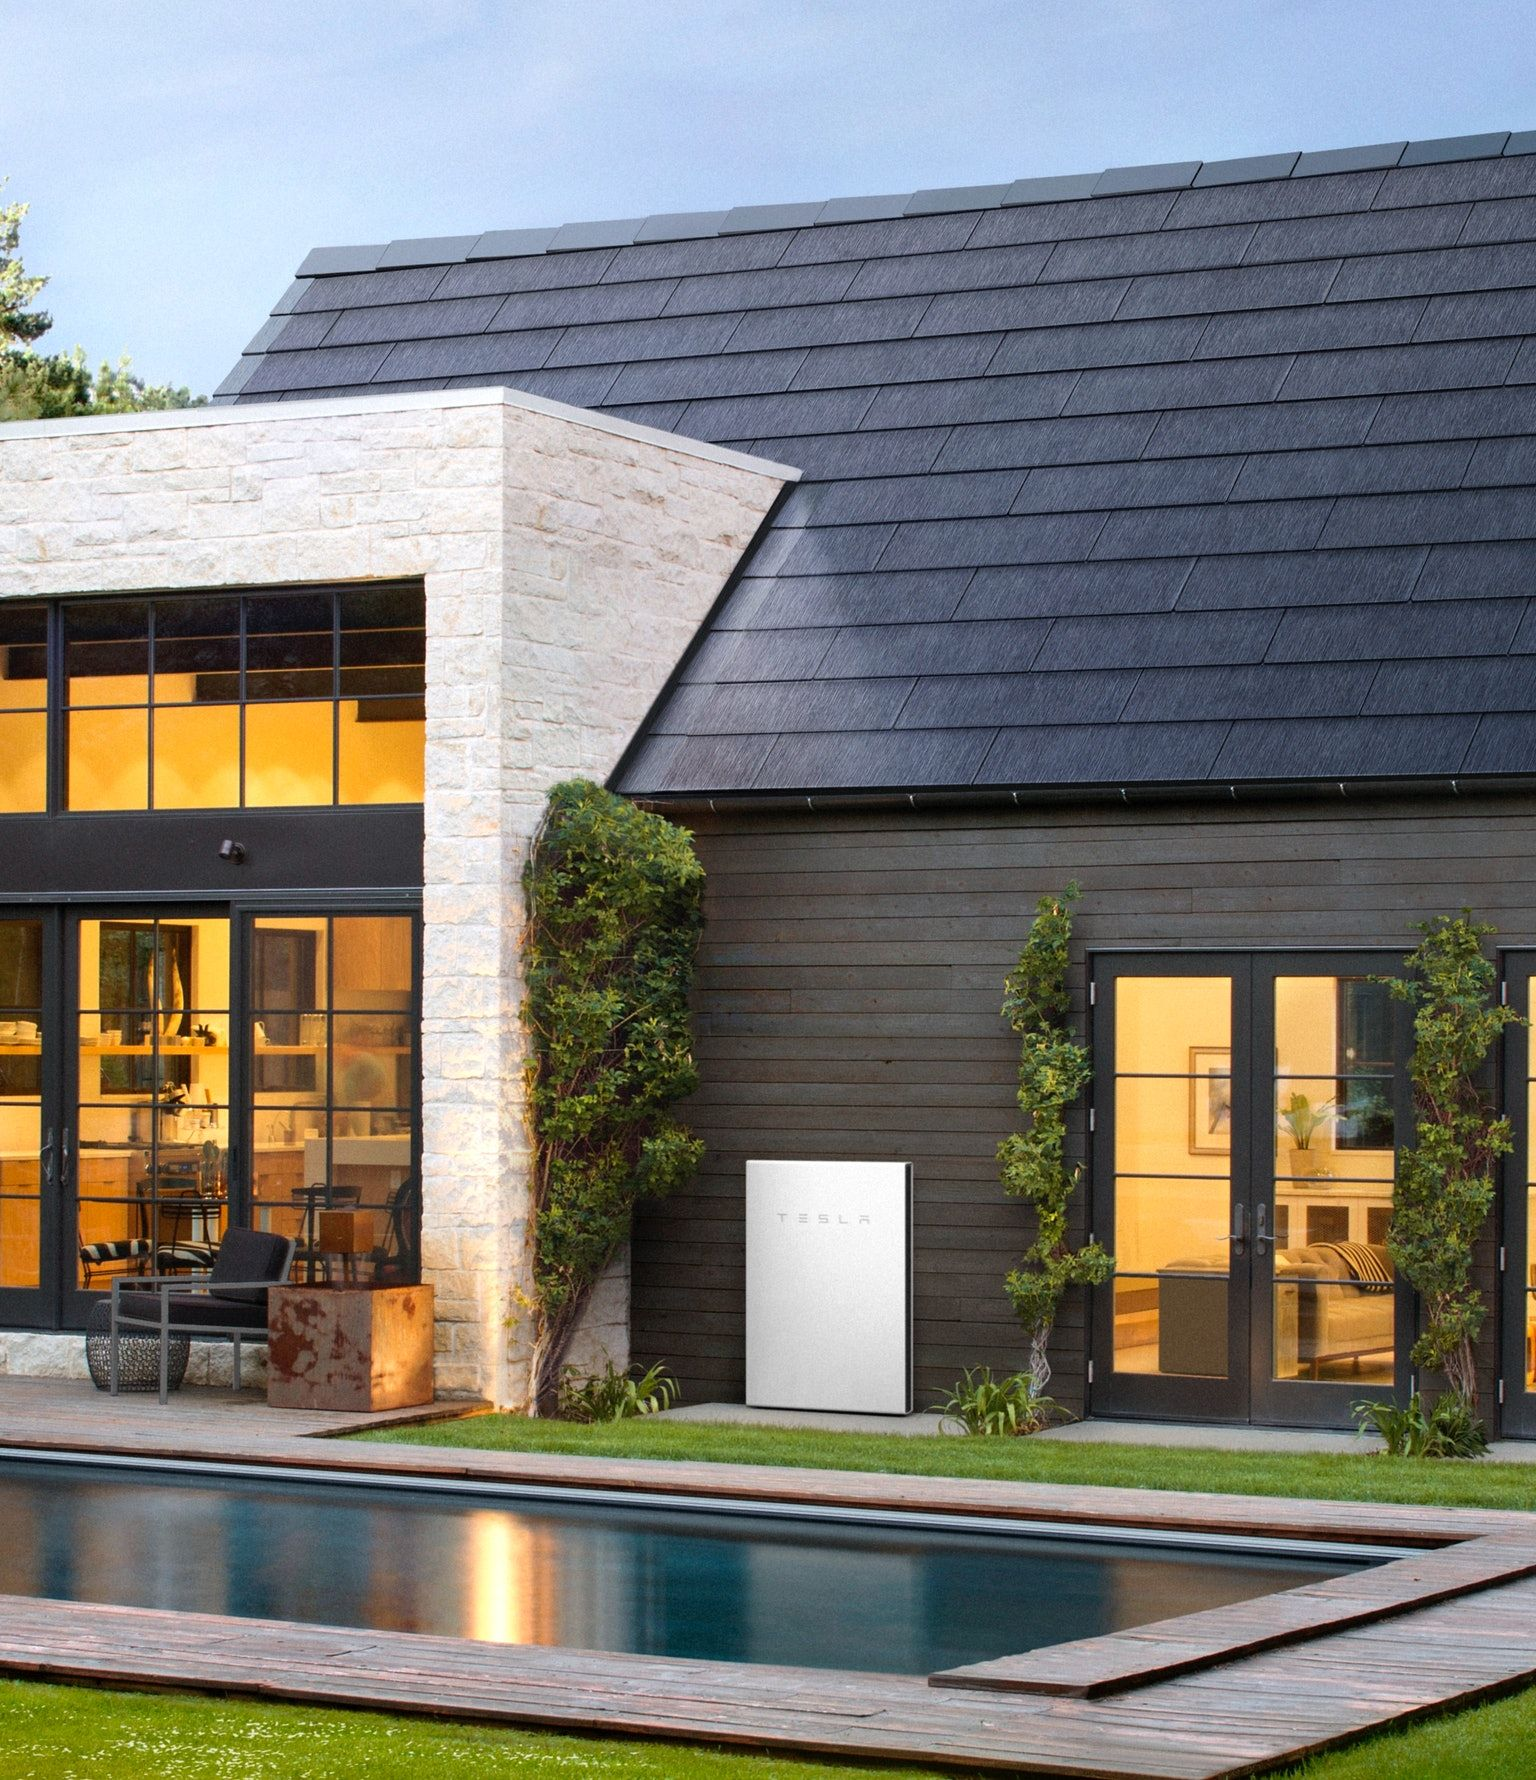 Tesla Solar Roof Elon Musk Outlines Plan To Reach 1 000 Homes Per Week In 2020 Tesla Solar Roof Solar Roof Roof Cost